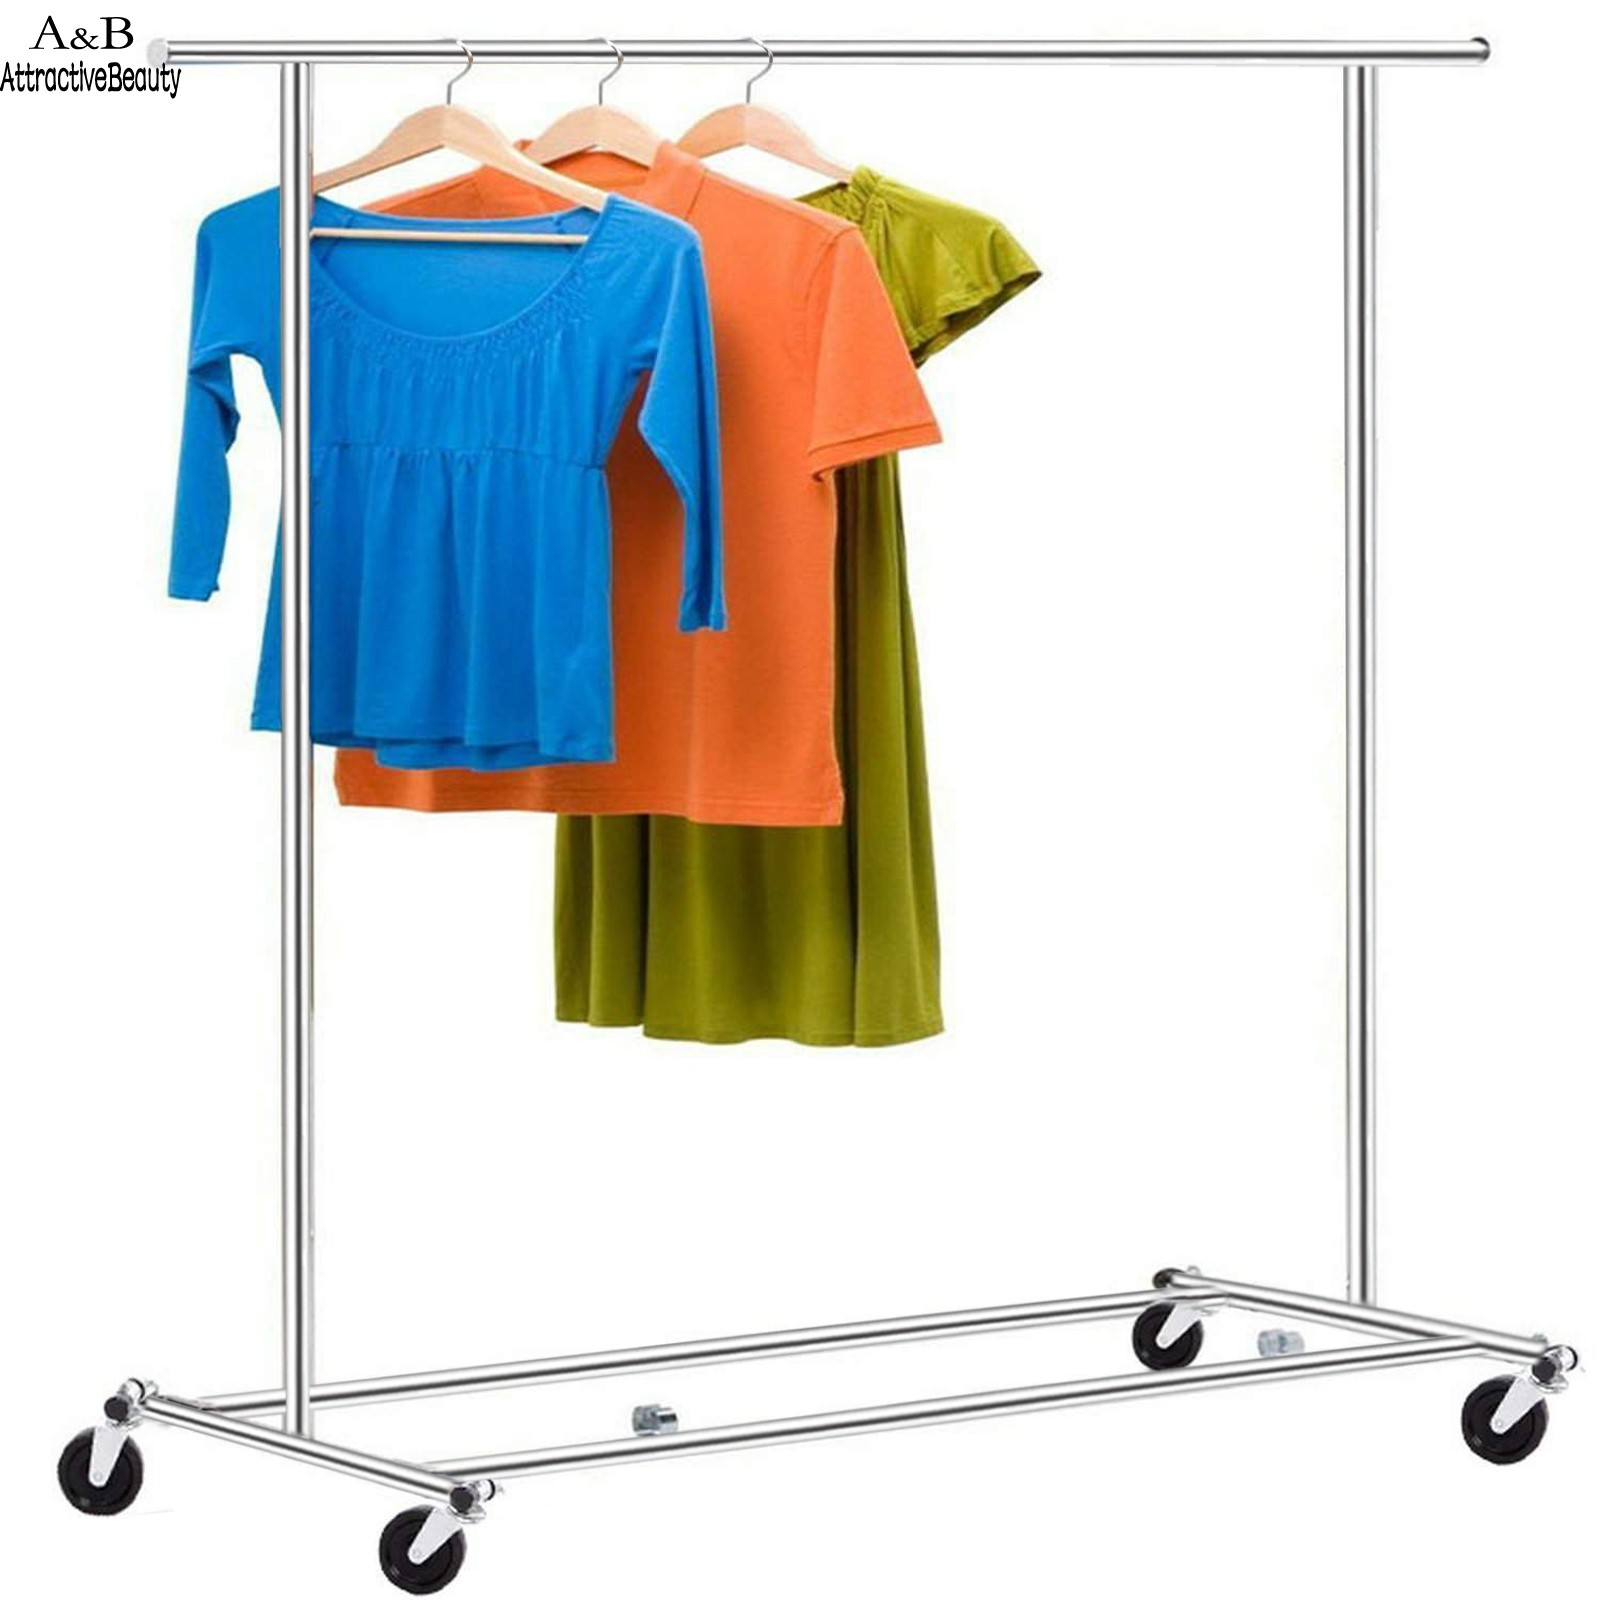 metal clothes racks - Clothes Racks